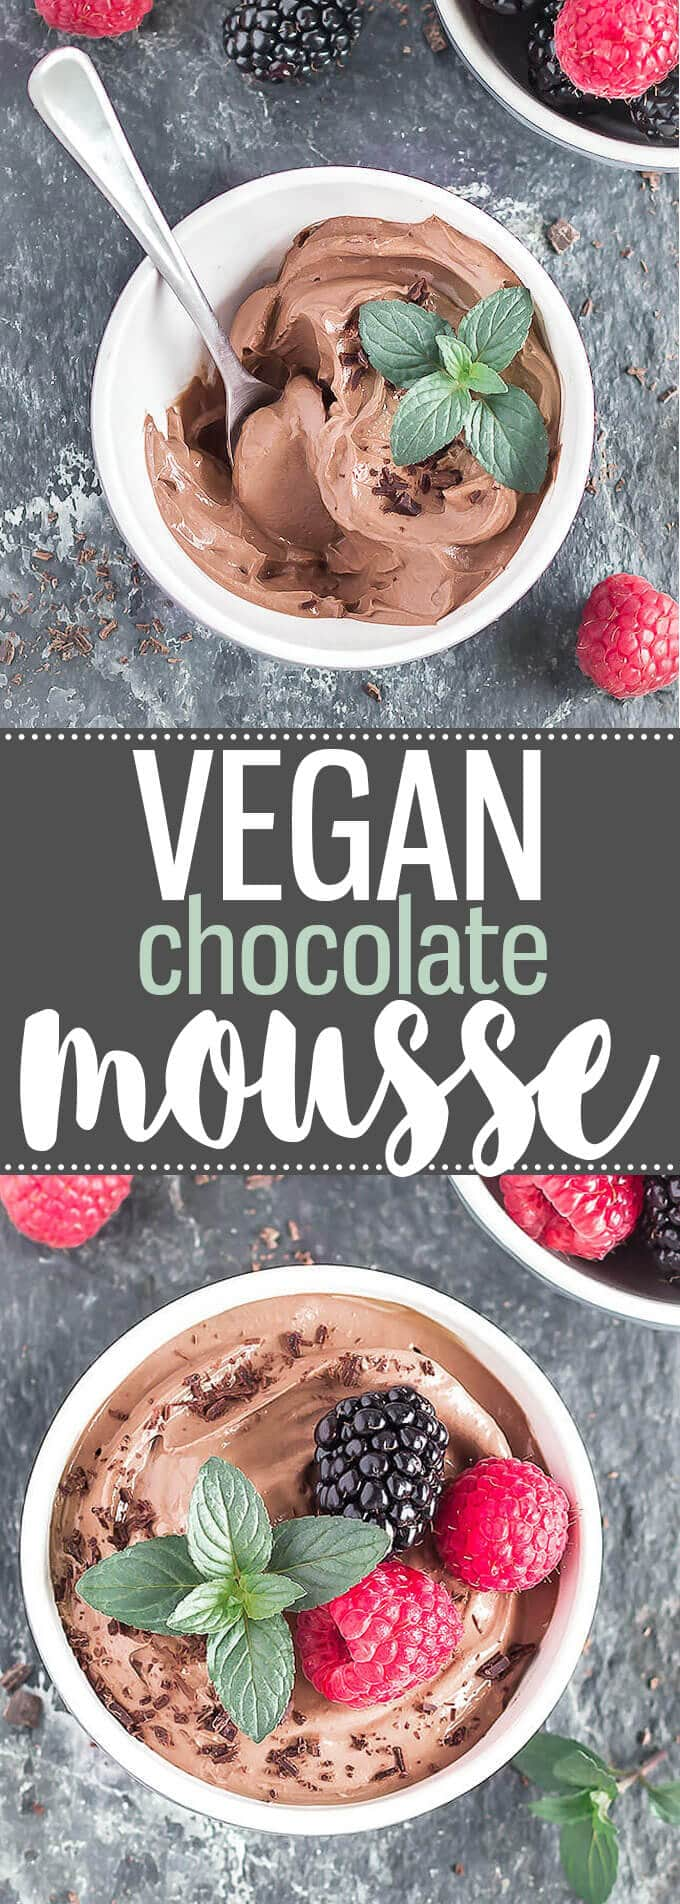 3-Ingredient Silken Tofu Chocolate Mousse - A super easy dessert or snack, ready in 5 minutes, and you can't taste the tofu! gluten-free, dairy-free, eggless, and vegan. #dessert #chocolate #chocolatedessert #tofu #silkentofu #mousse #vegan #dairyfree #glutenfree #3ingredient #healthyrecipes #healthyeating #easyrecipes